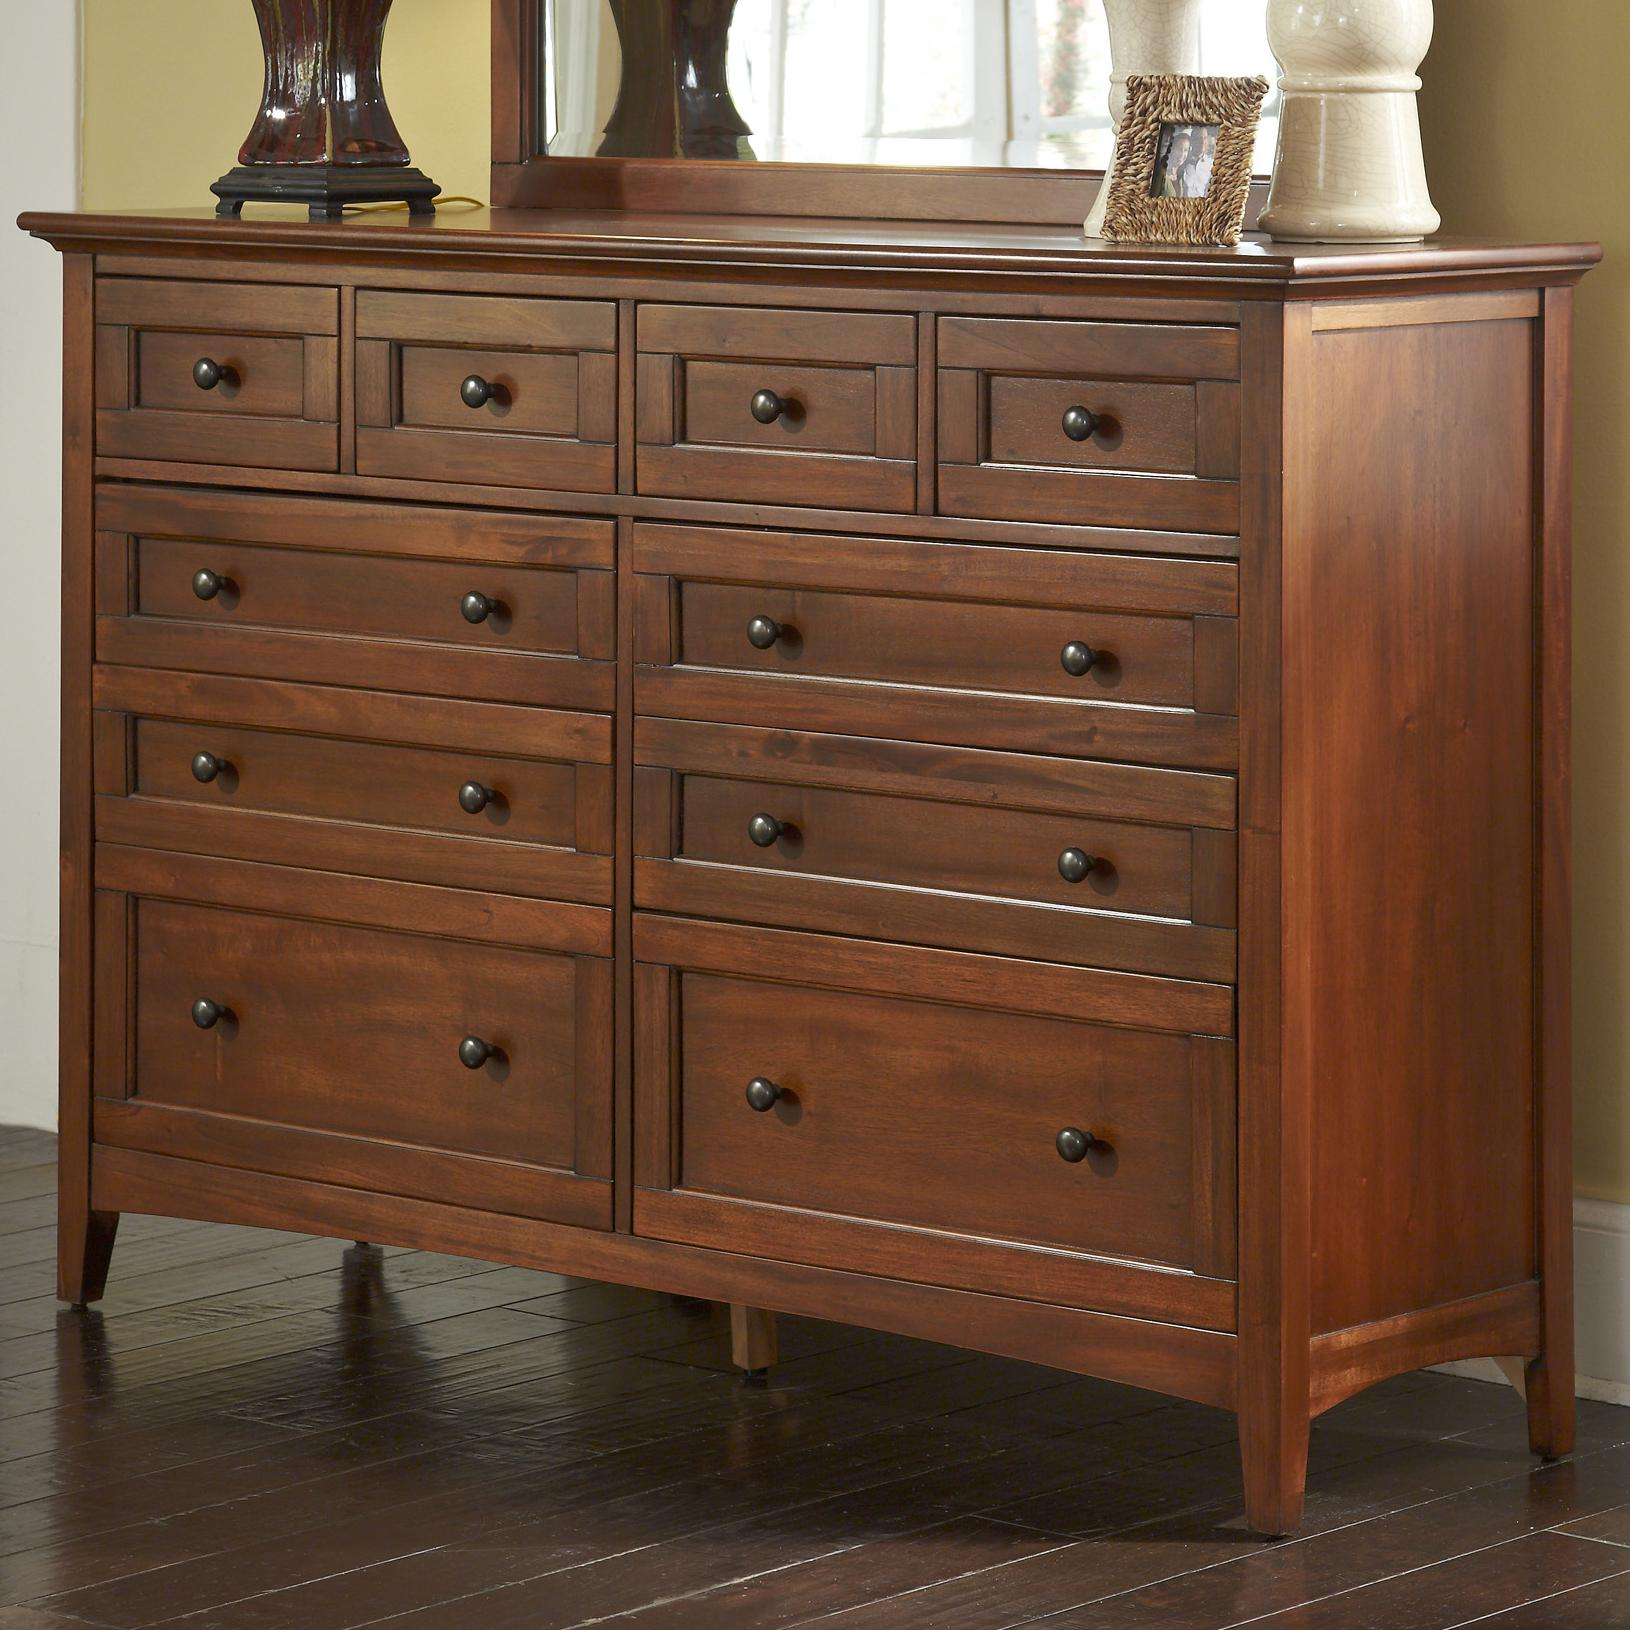 Transitional 10 Drawer Dresser With Felt Lined Top Drawers